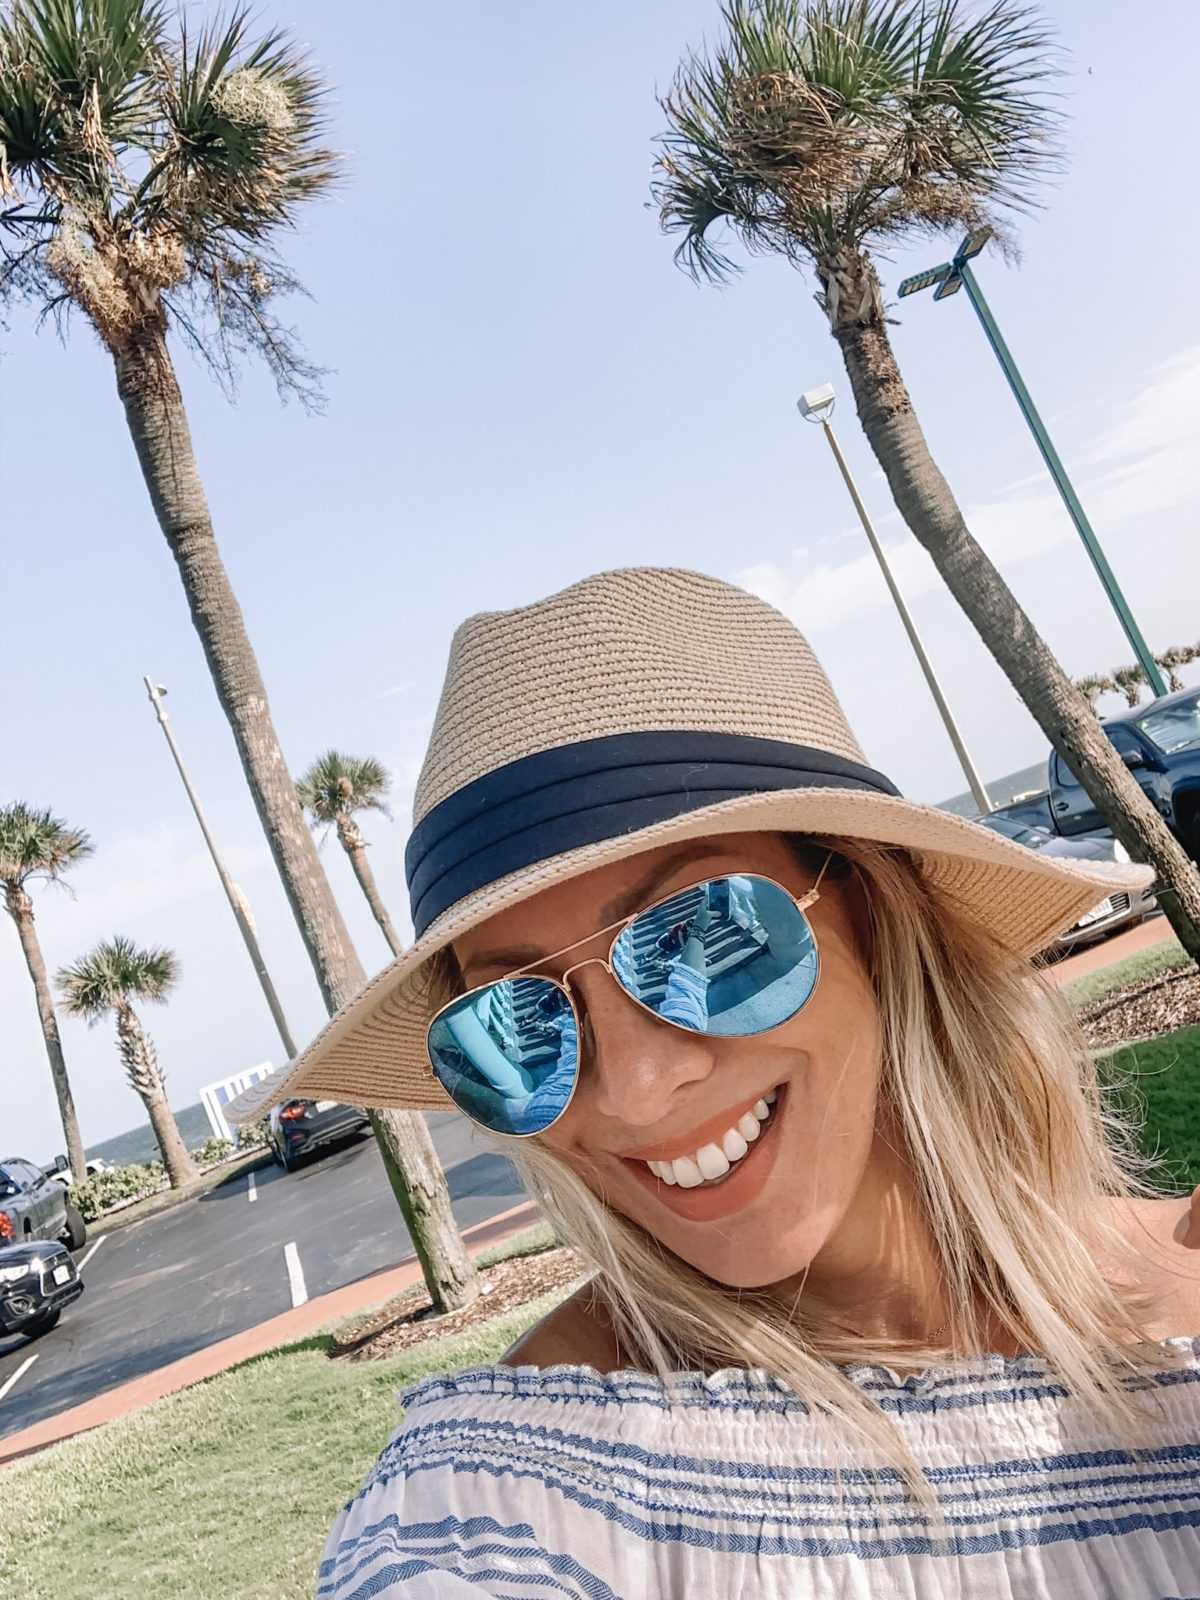 48 Hours in Galveston - stripe shirt with a beach hat